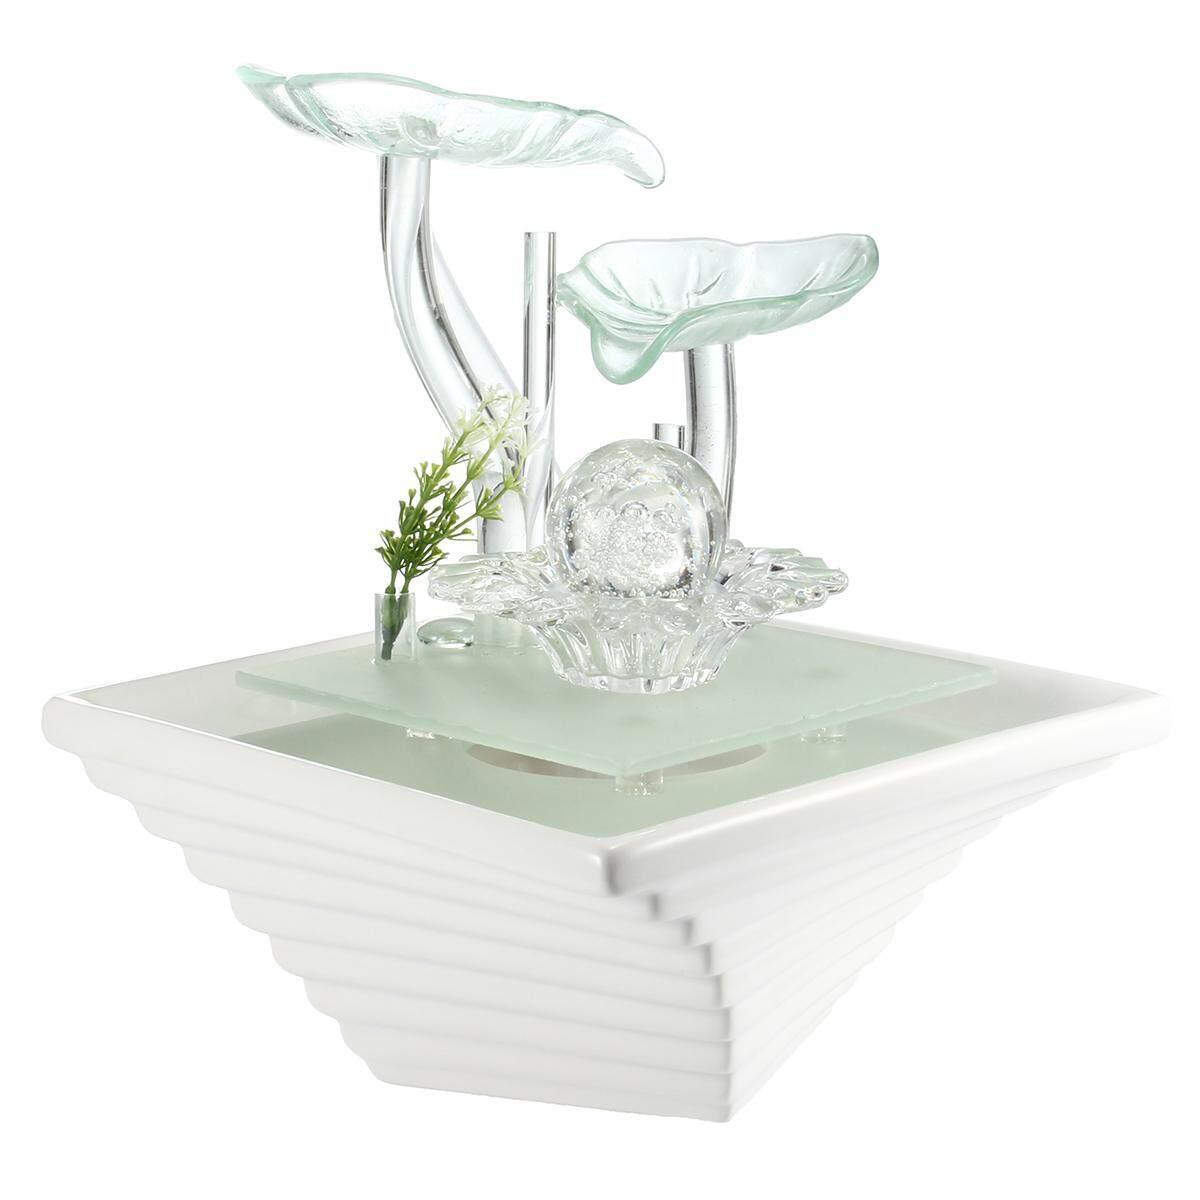 Turquoise petals Small indoor / Outdoor table top Water fountain water feature - intl